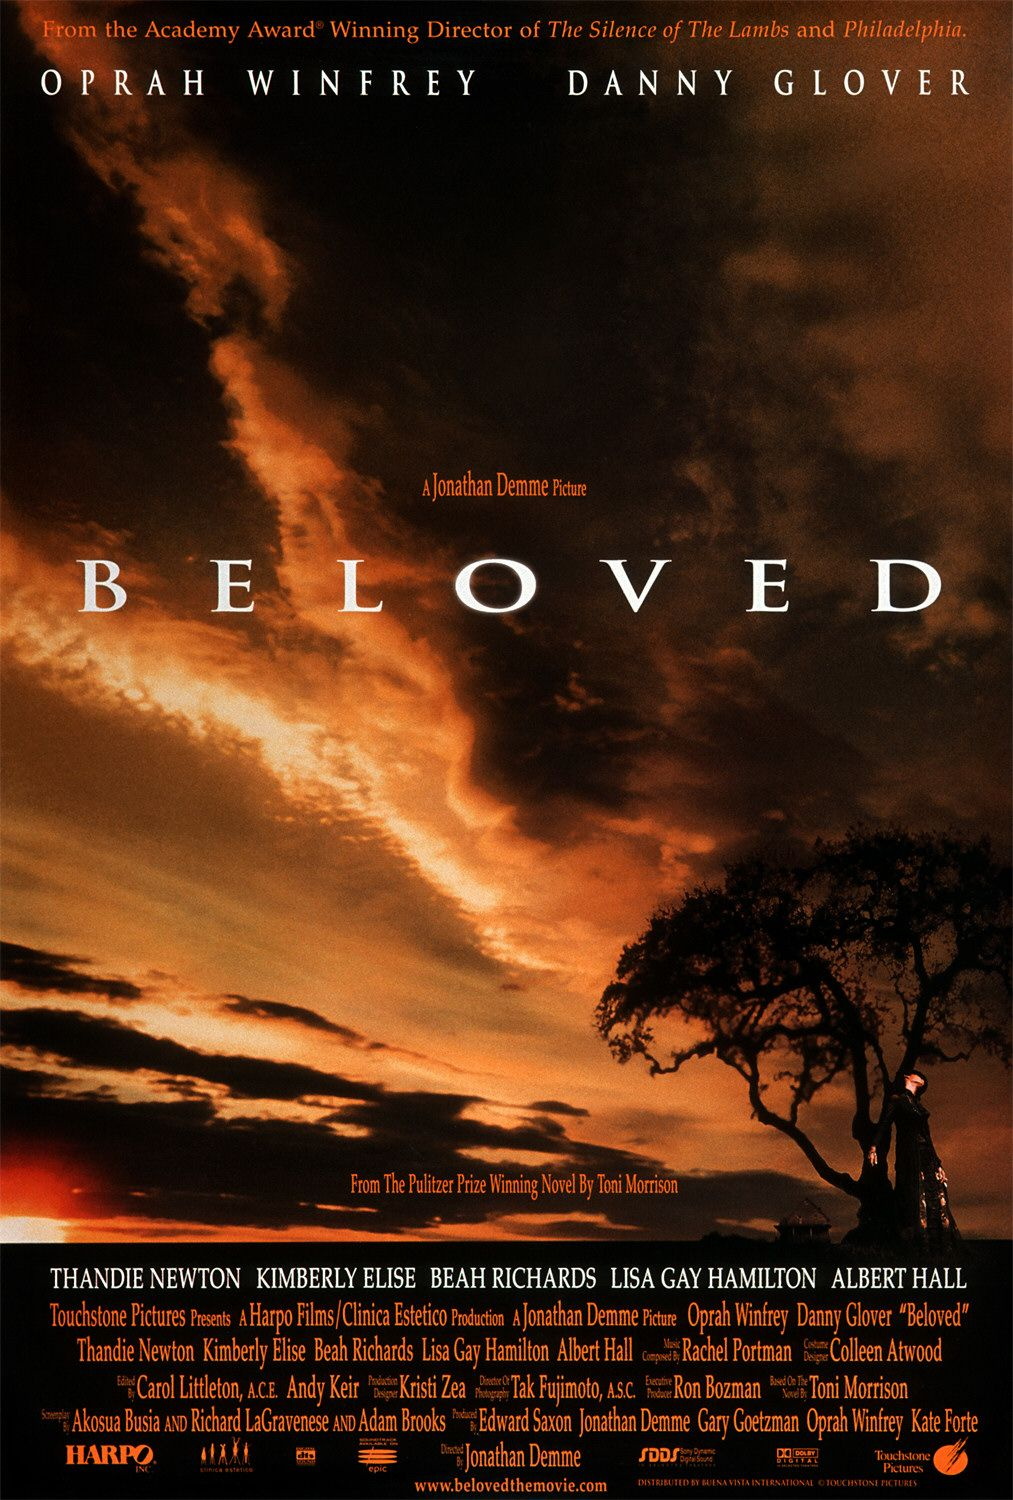 Affiche Poster beloved disney touchstone